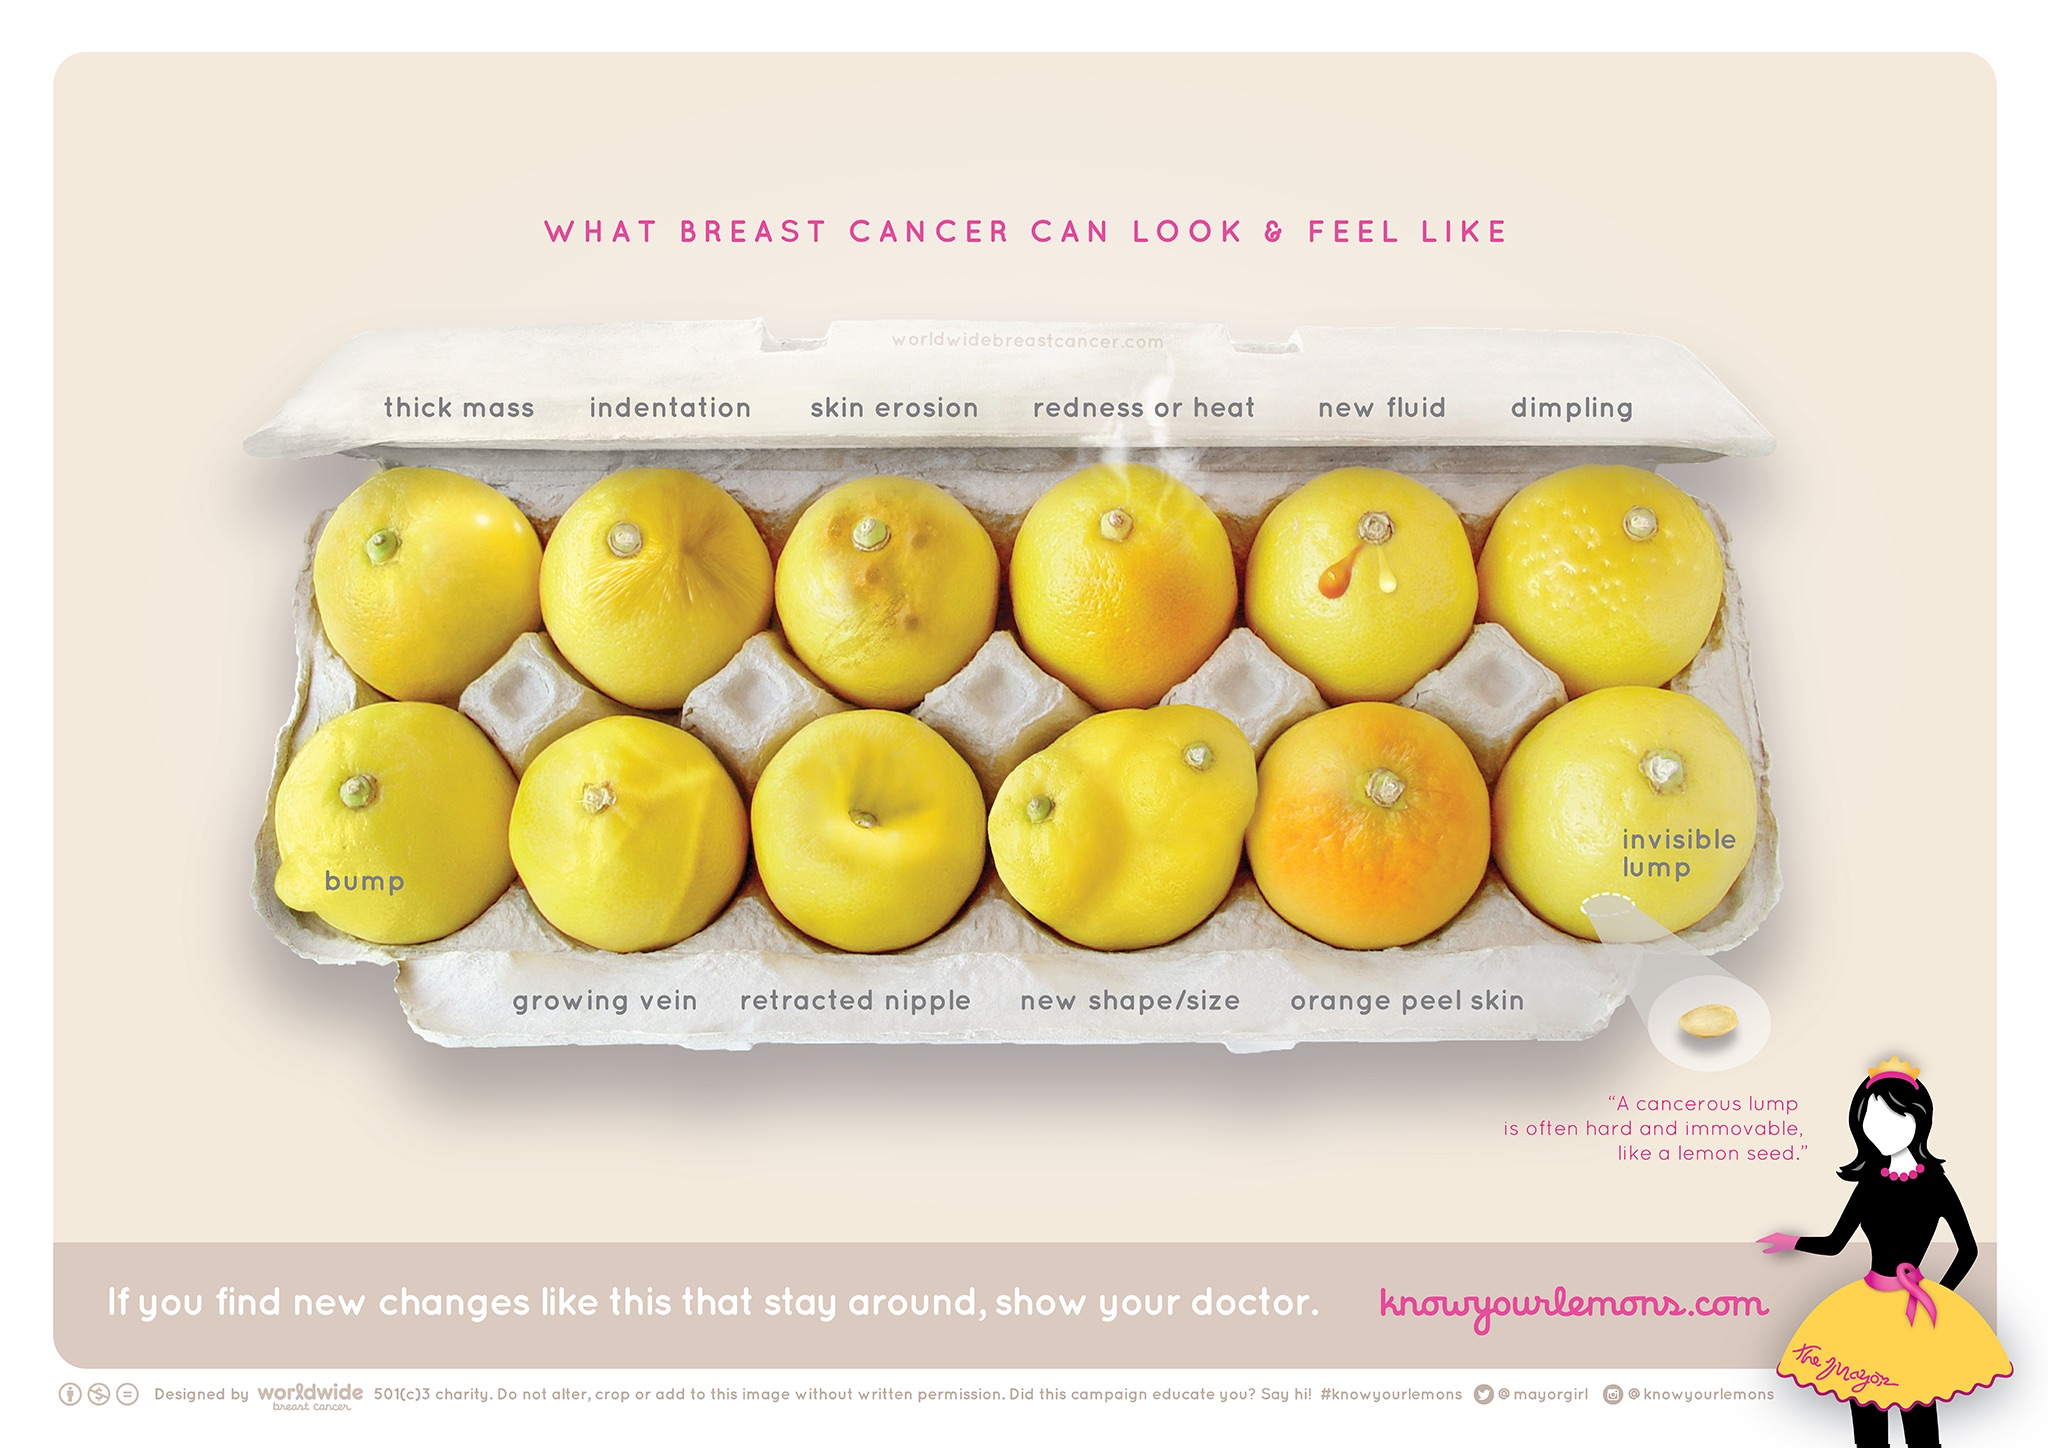 Image from WorldWideBreastCancer.com/research/ showing twelve lemons in an egg carton, with each one indicating a different way in which breast cancer can present itself